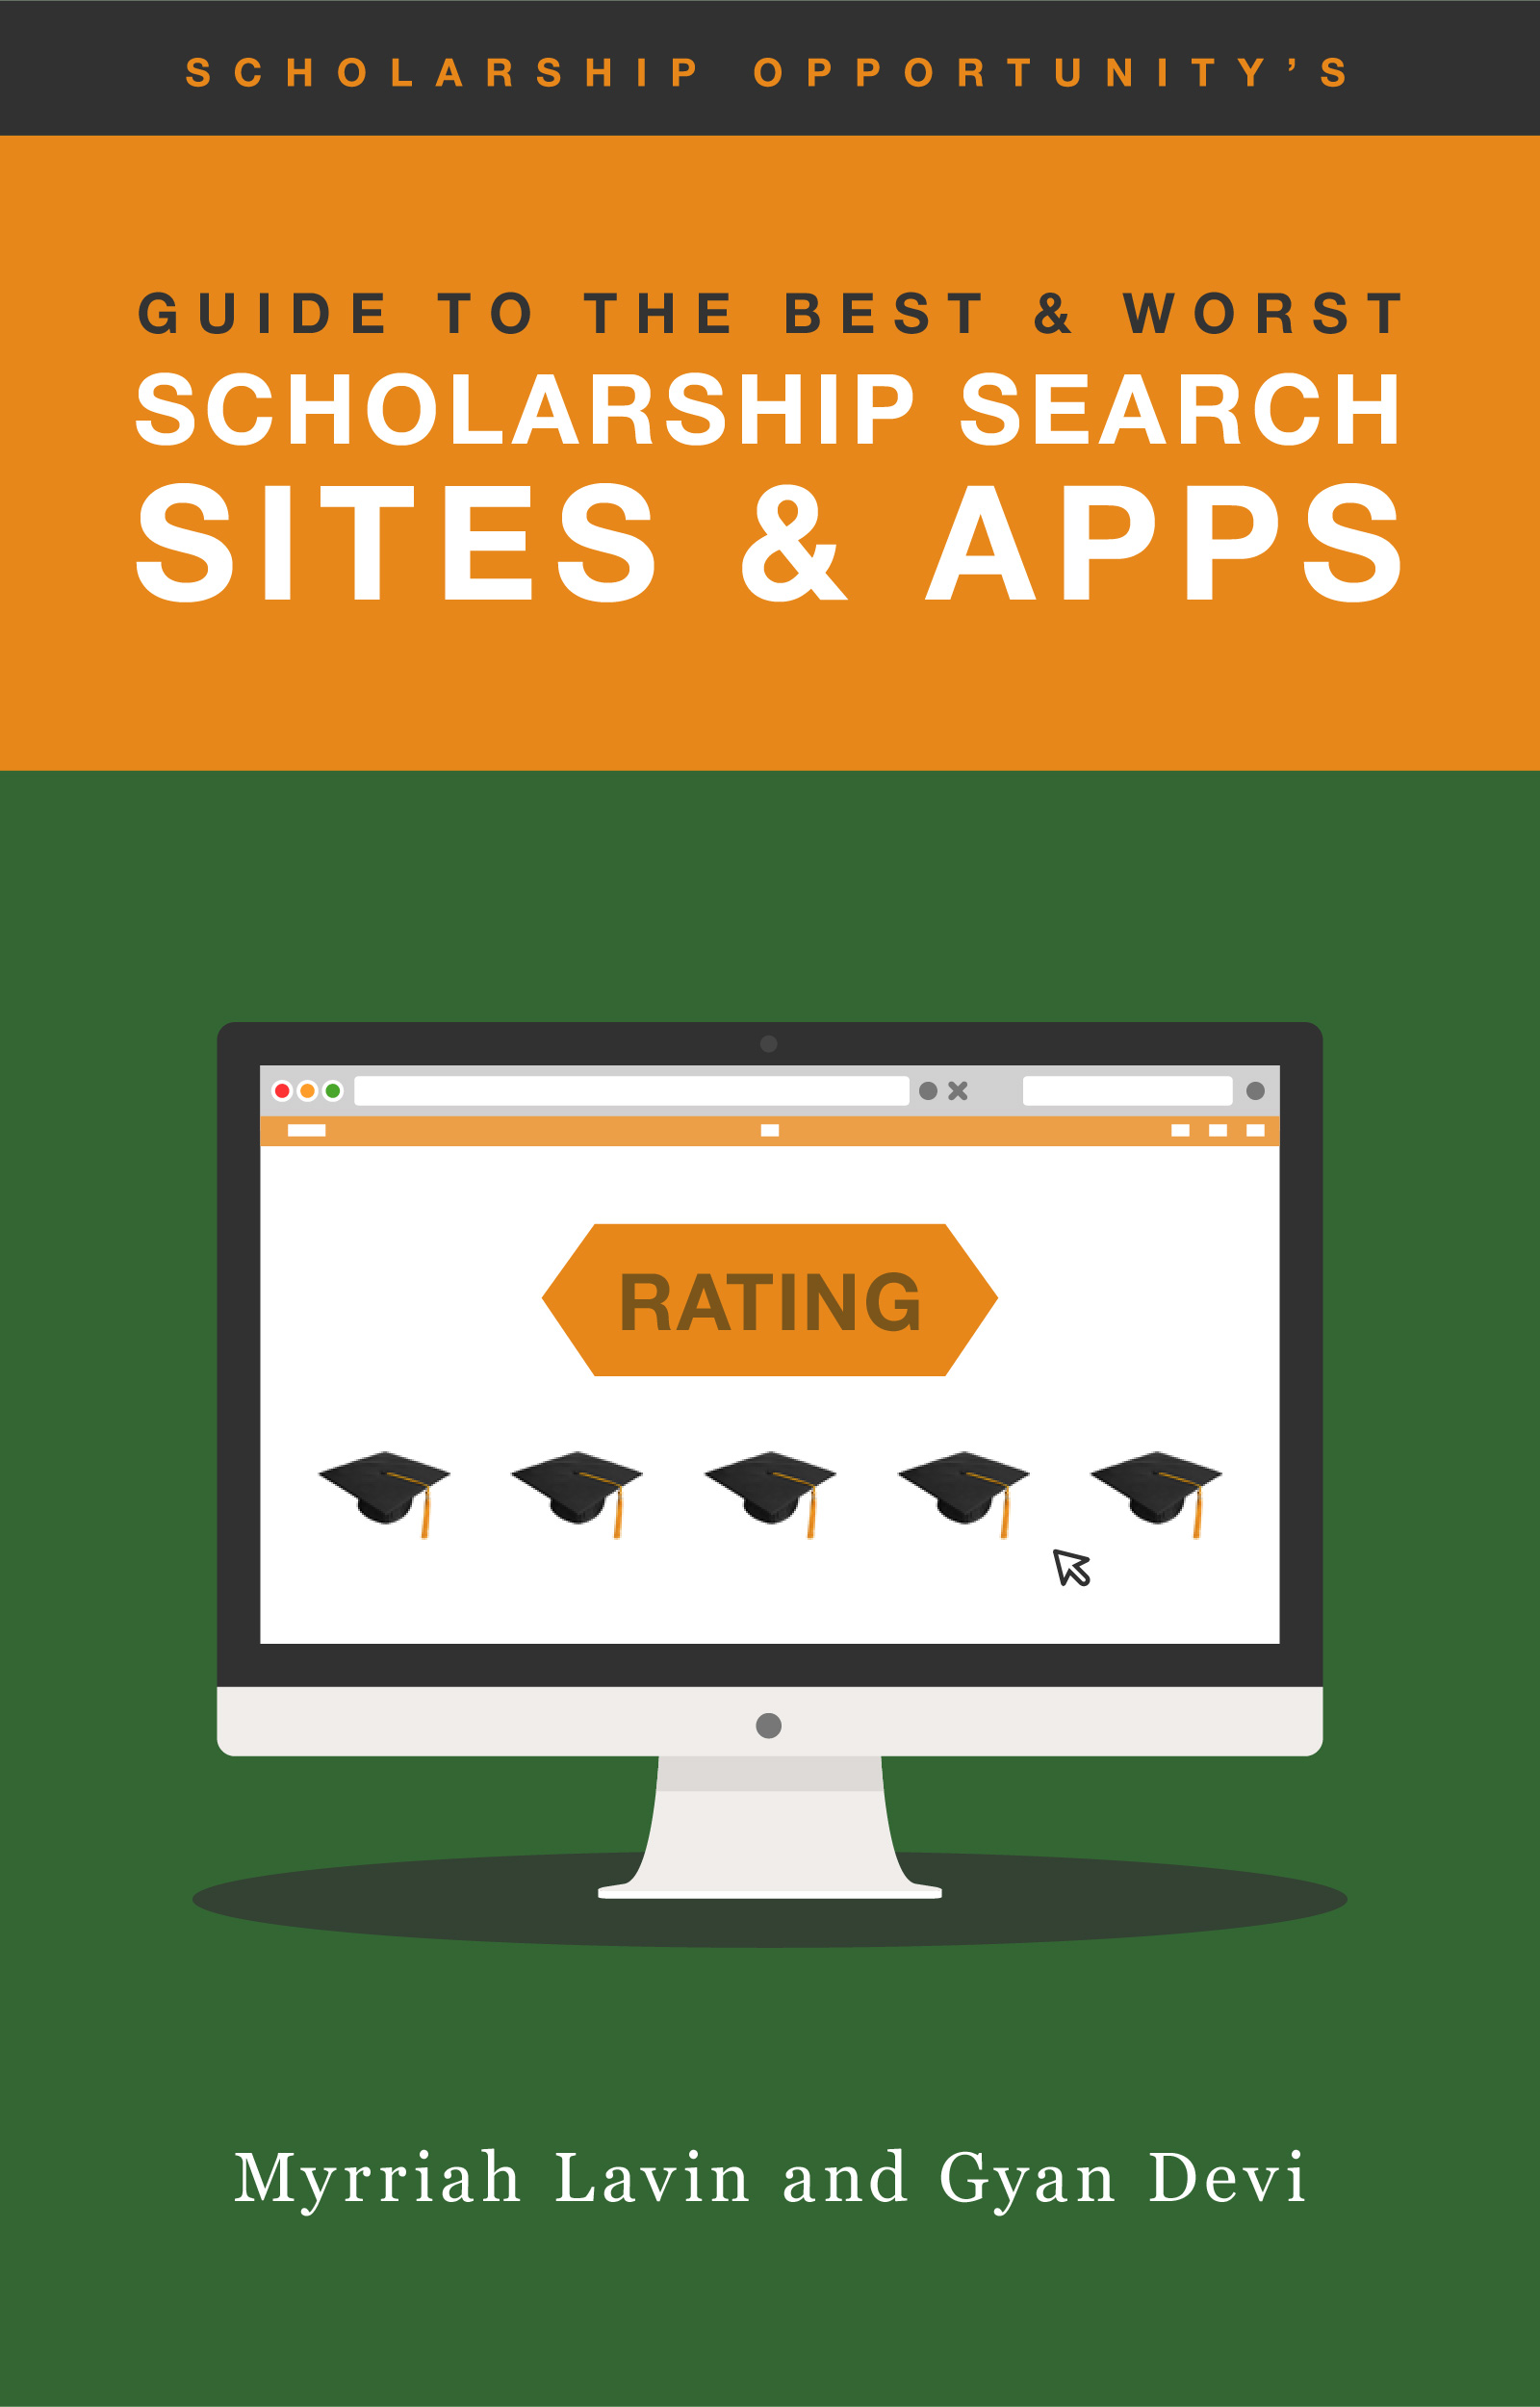 Guide to the Best & Worst Scholarship Sites & Apps